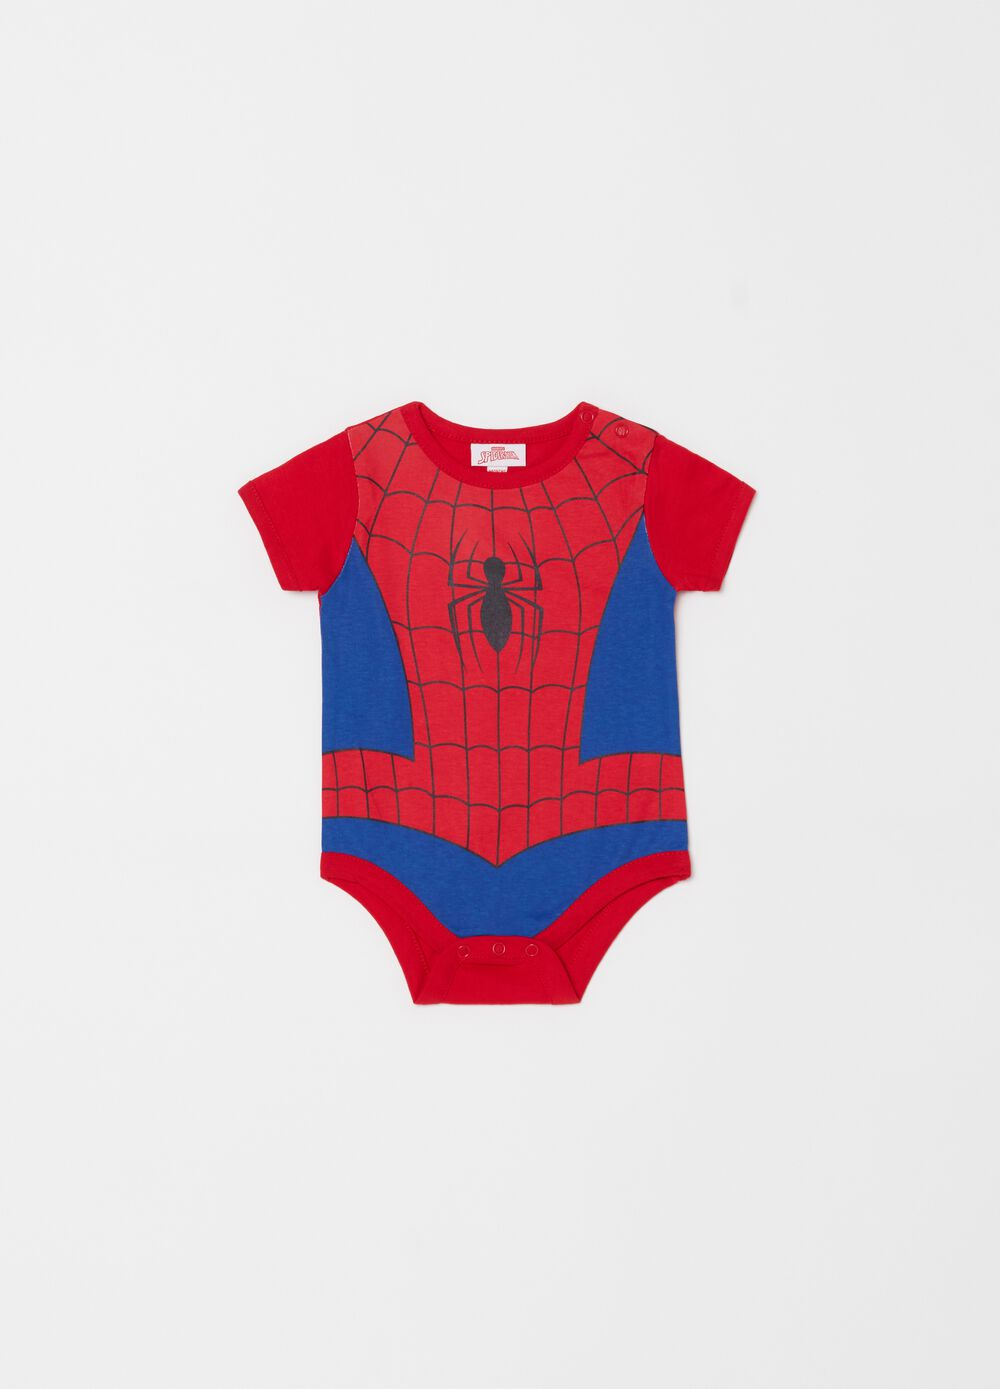 100% cotton bodysuit with Spider-Man pattern